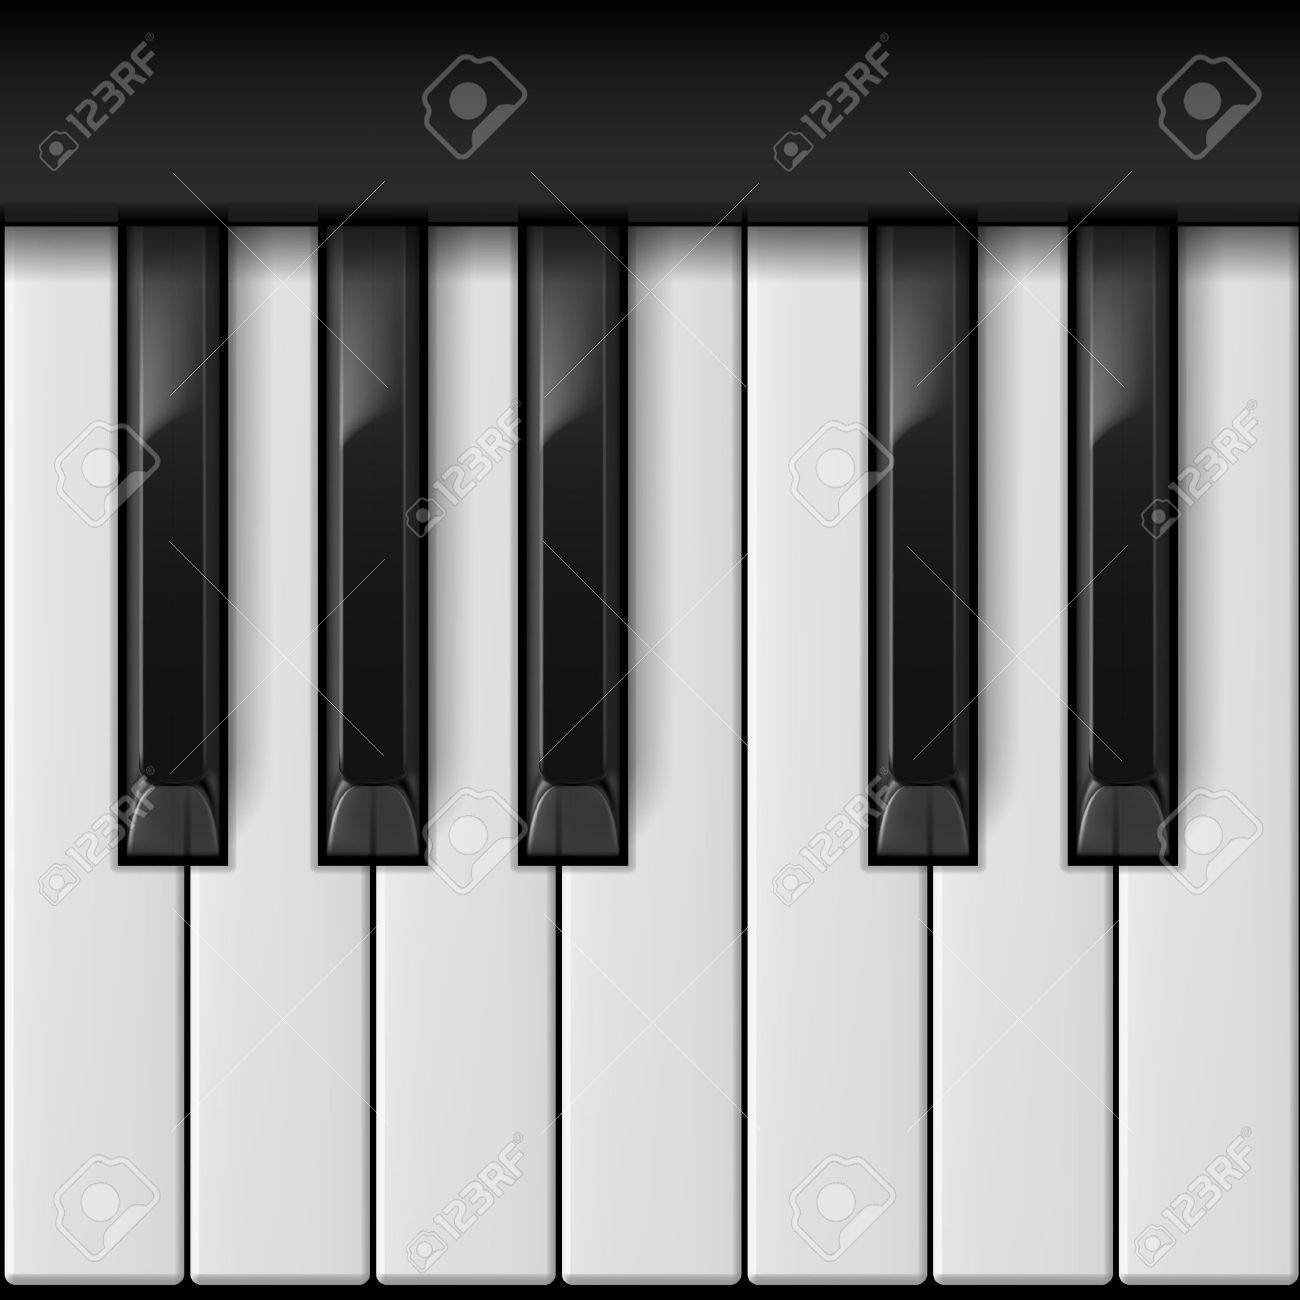 Piano keys. Cool illustration for creative design Stock Vector - 16955001